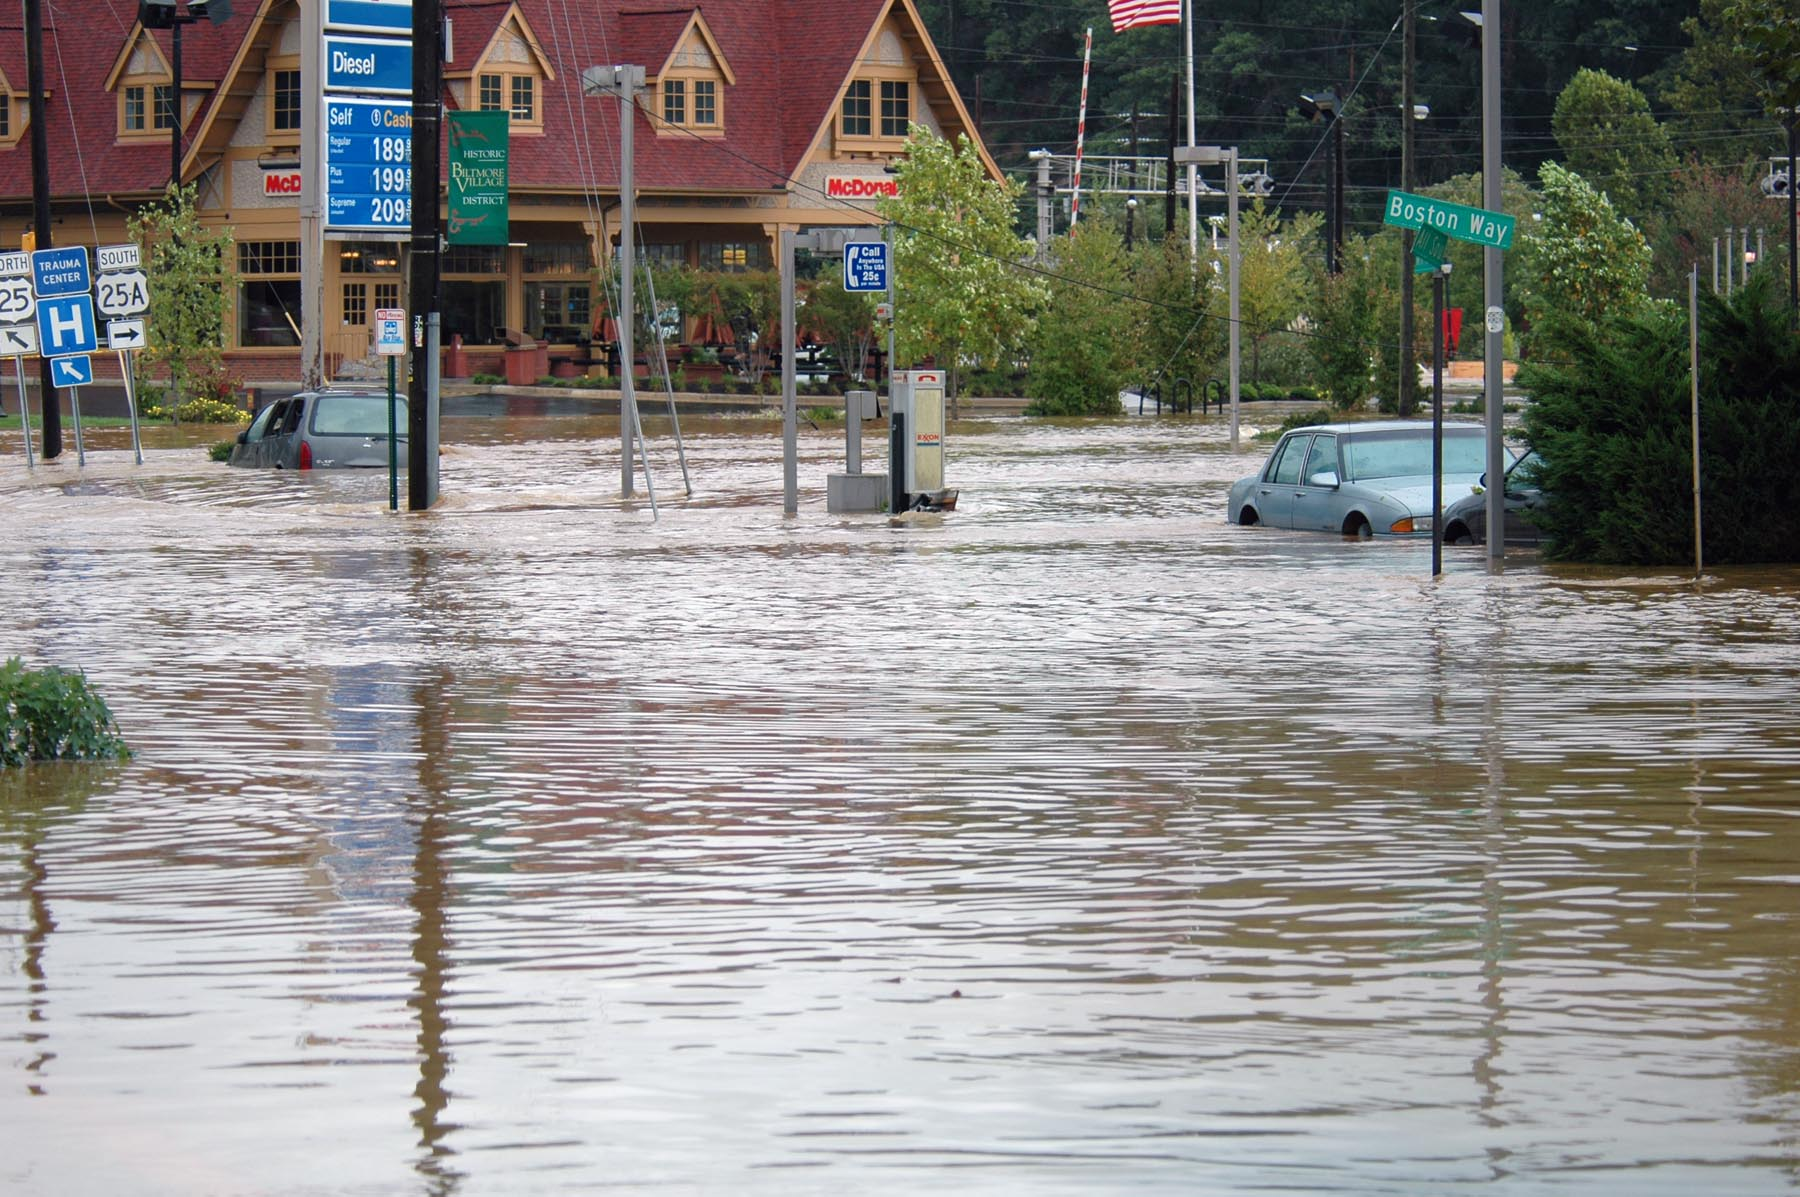 Flooding is the most common type of natural disaster in the U.S., and areas across the coast and inland remain susceptible. Asheville, 2004, after Hurricane Frances. Credit: Leif Skoogfors/FEMA.